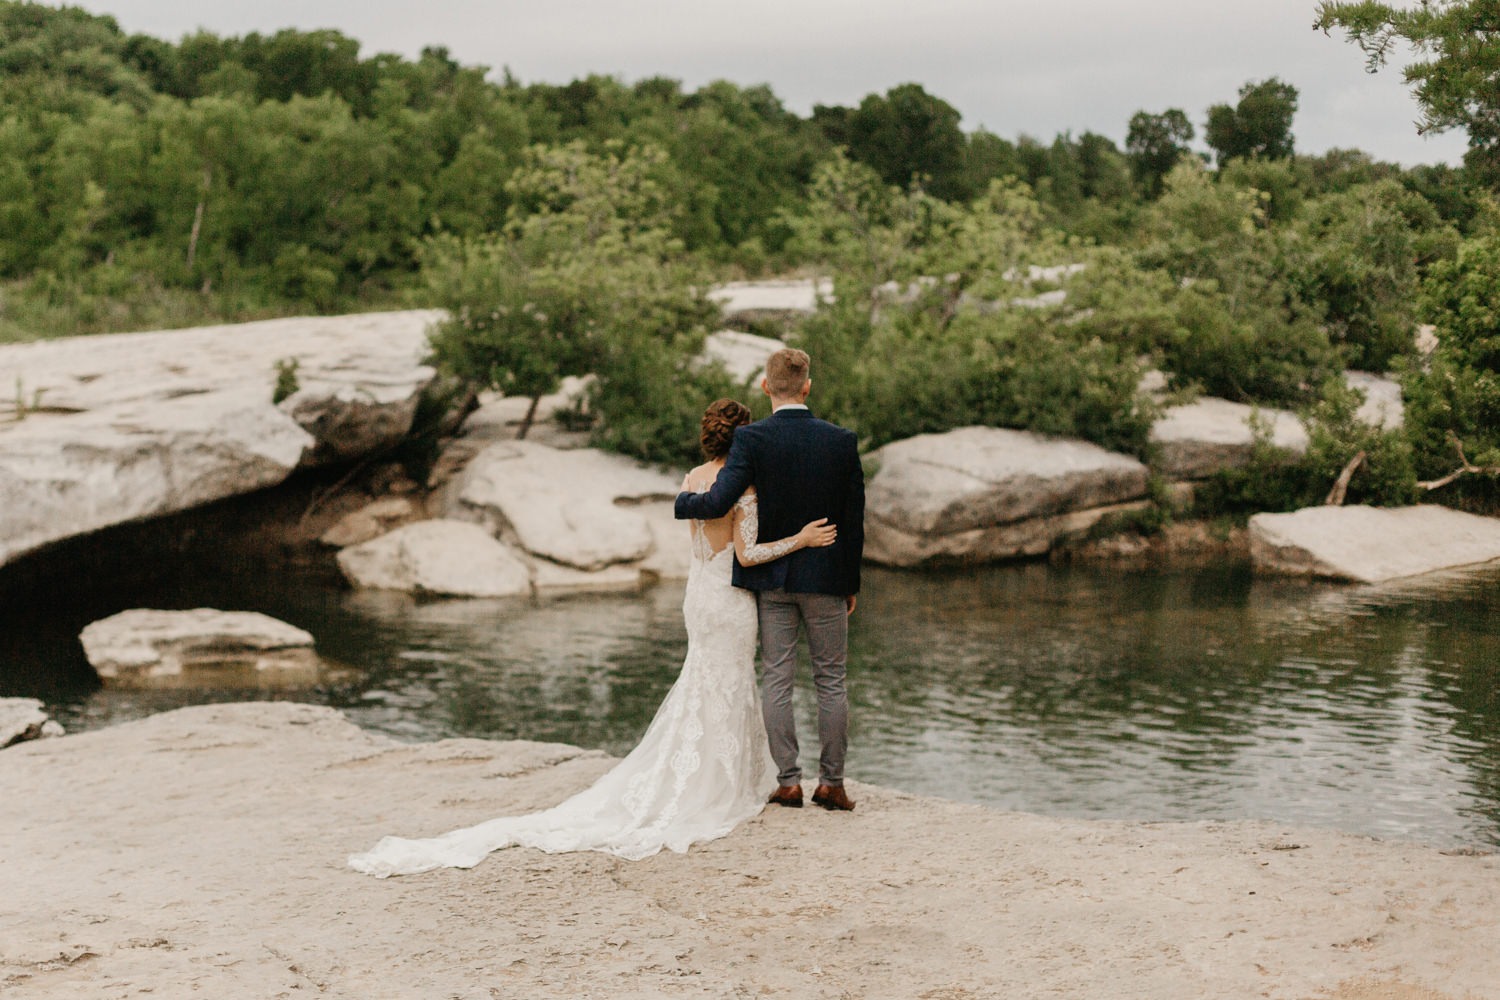 HaileyDylan_Austin Elopement Photographer Austin Wedding Photographer-121.jpg